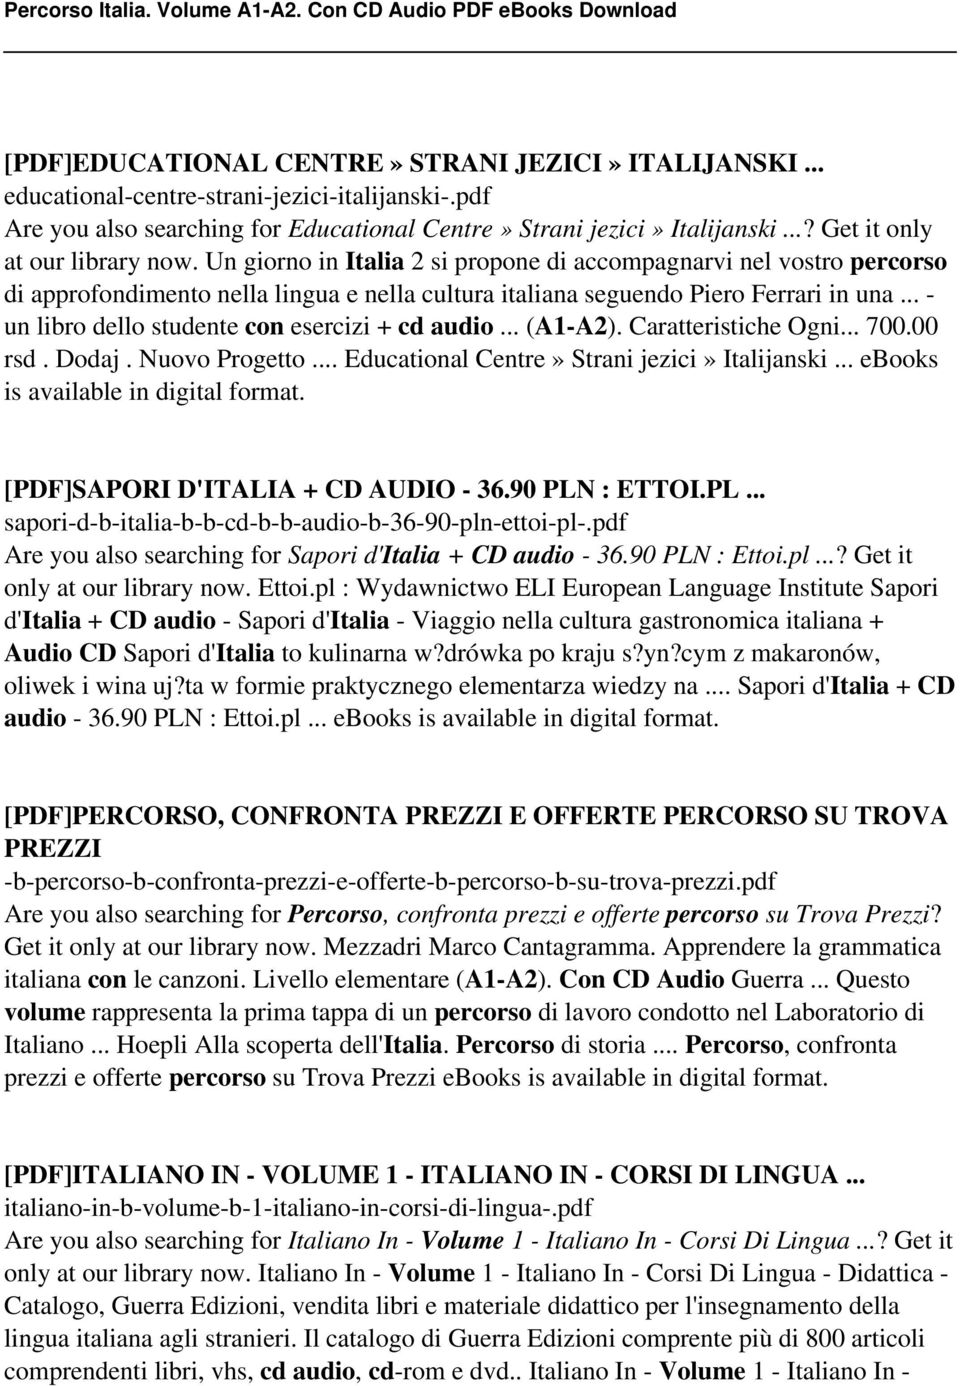 Percorso italia volume a1 a2 con cd audio pdf pdf un libro dello studente con esercizi cd audio fandeluxe